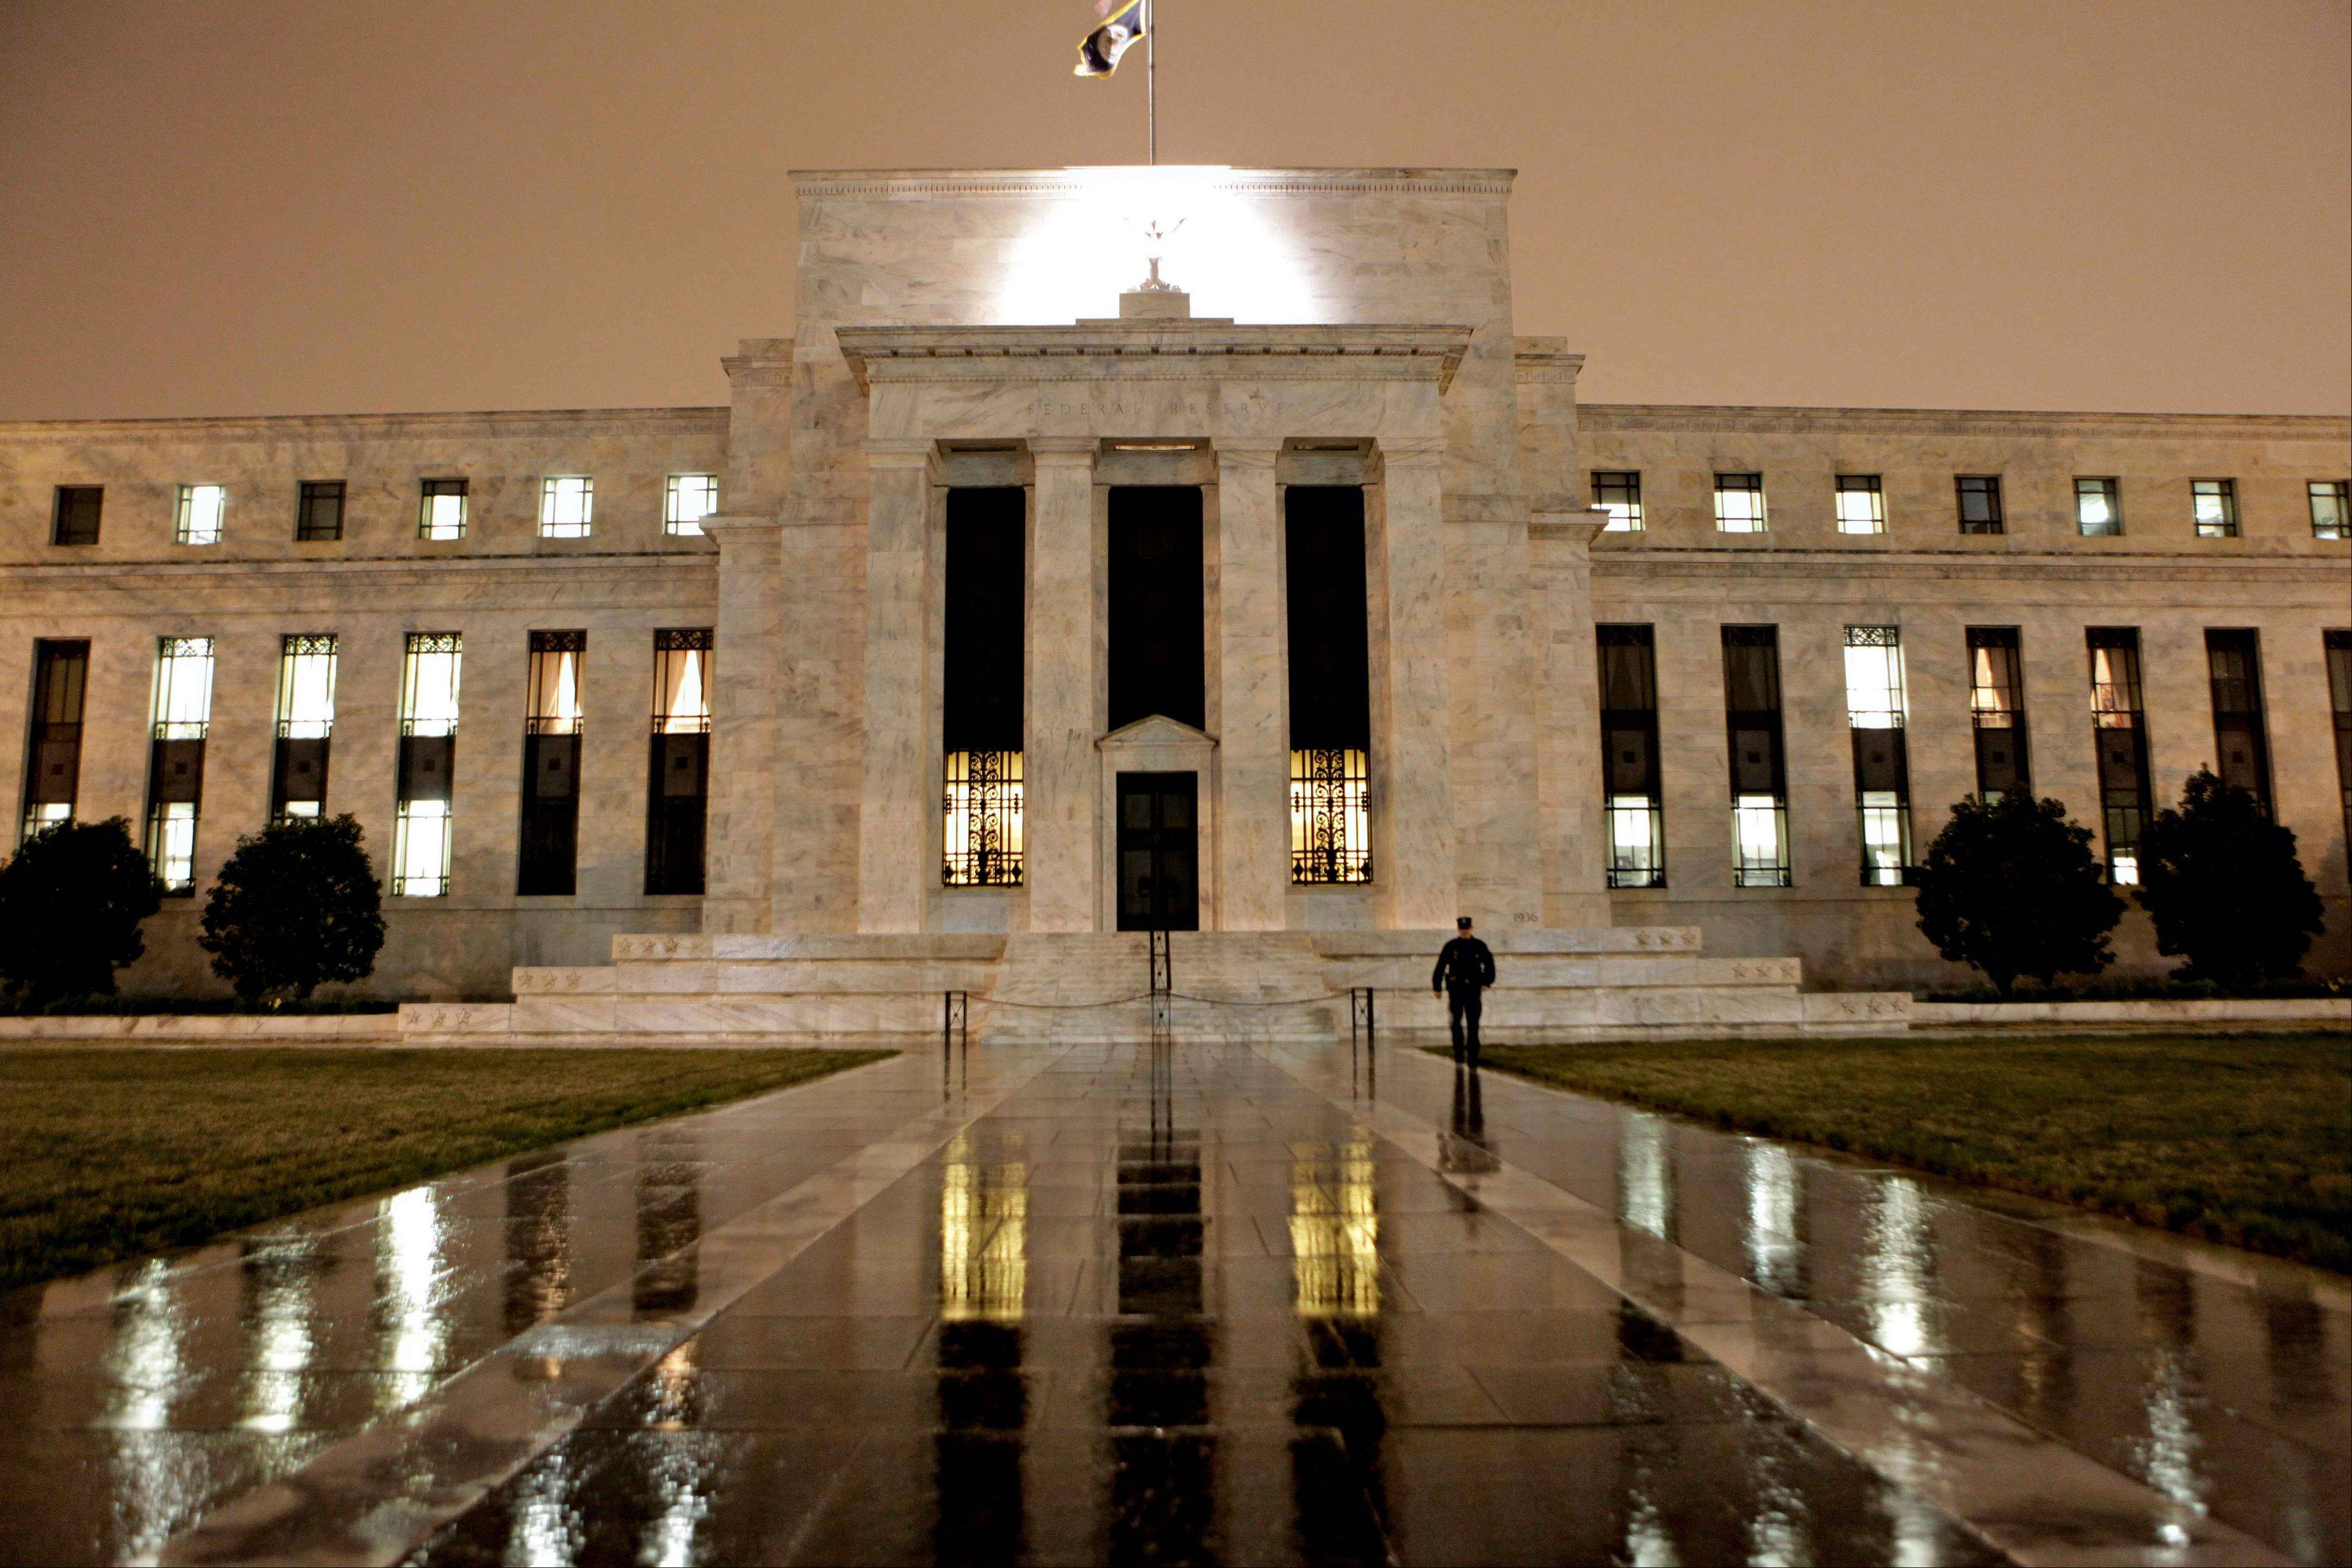 After a 16-day partial government shutdown and a batch of tepid economic data, no one thinks the Fed is ready to reduce its stimulus when it meets Tuesday and Wednesday, Oct. 29-30, 2013. Many analysts now predict it will maintain the pace of the bond purchases into next year.